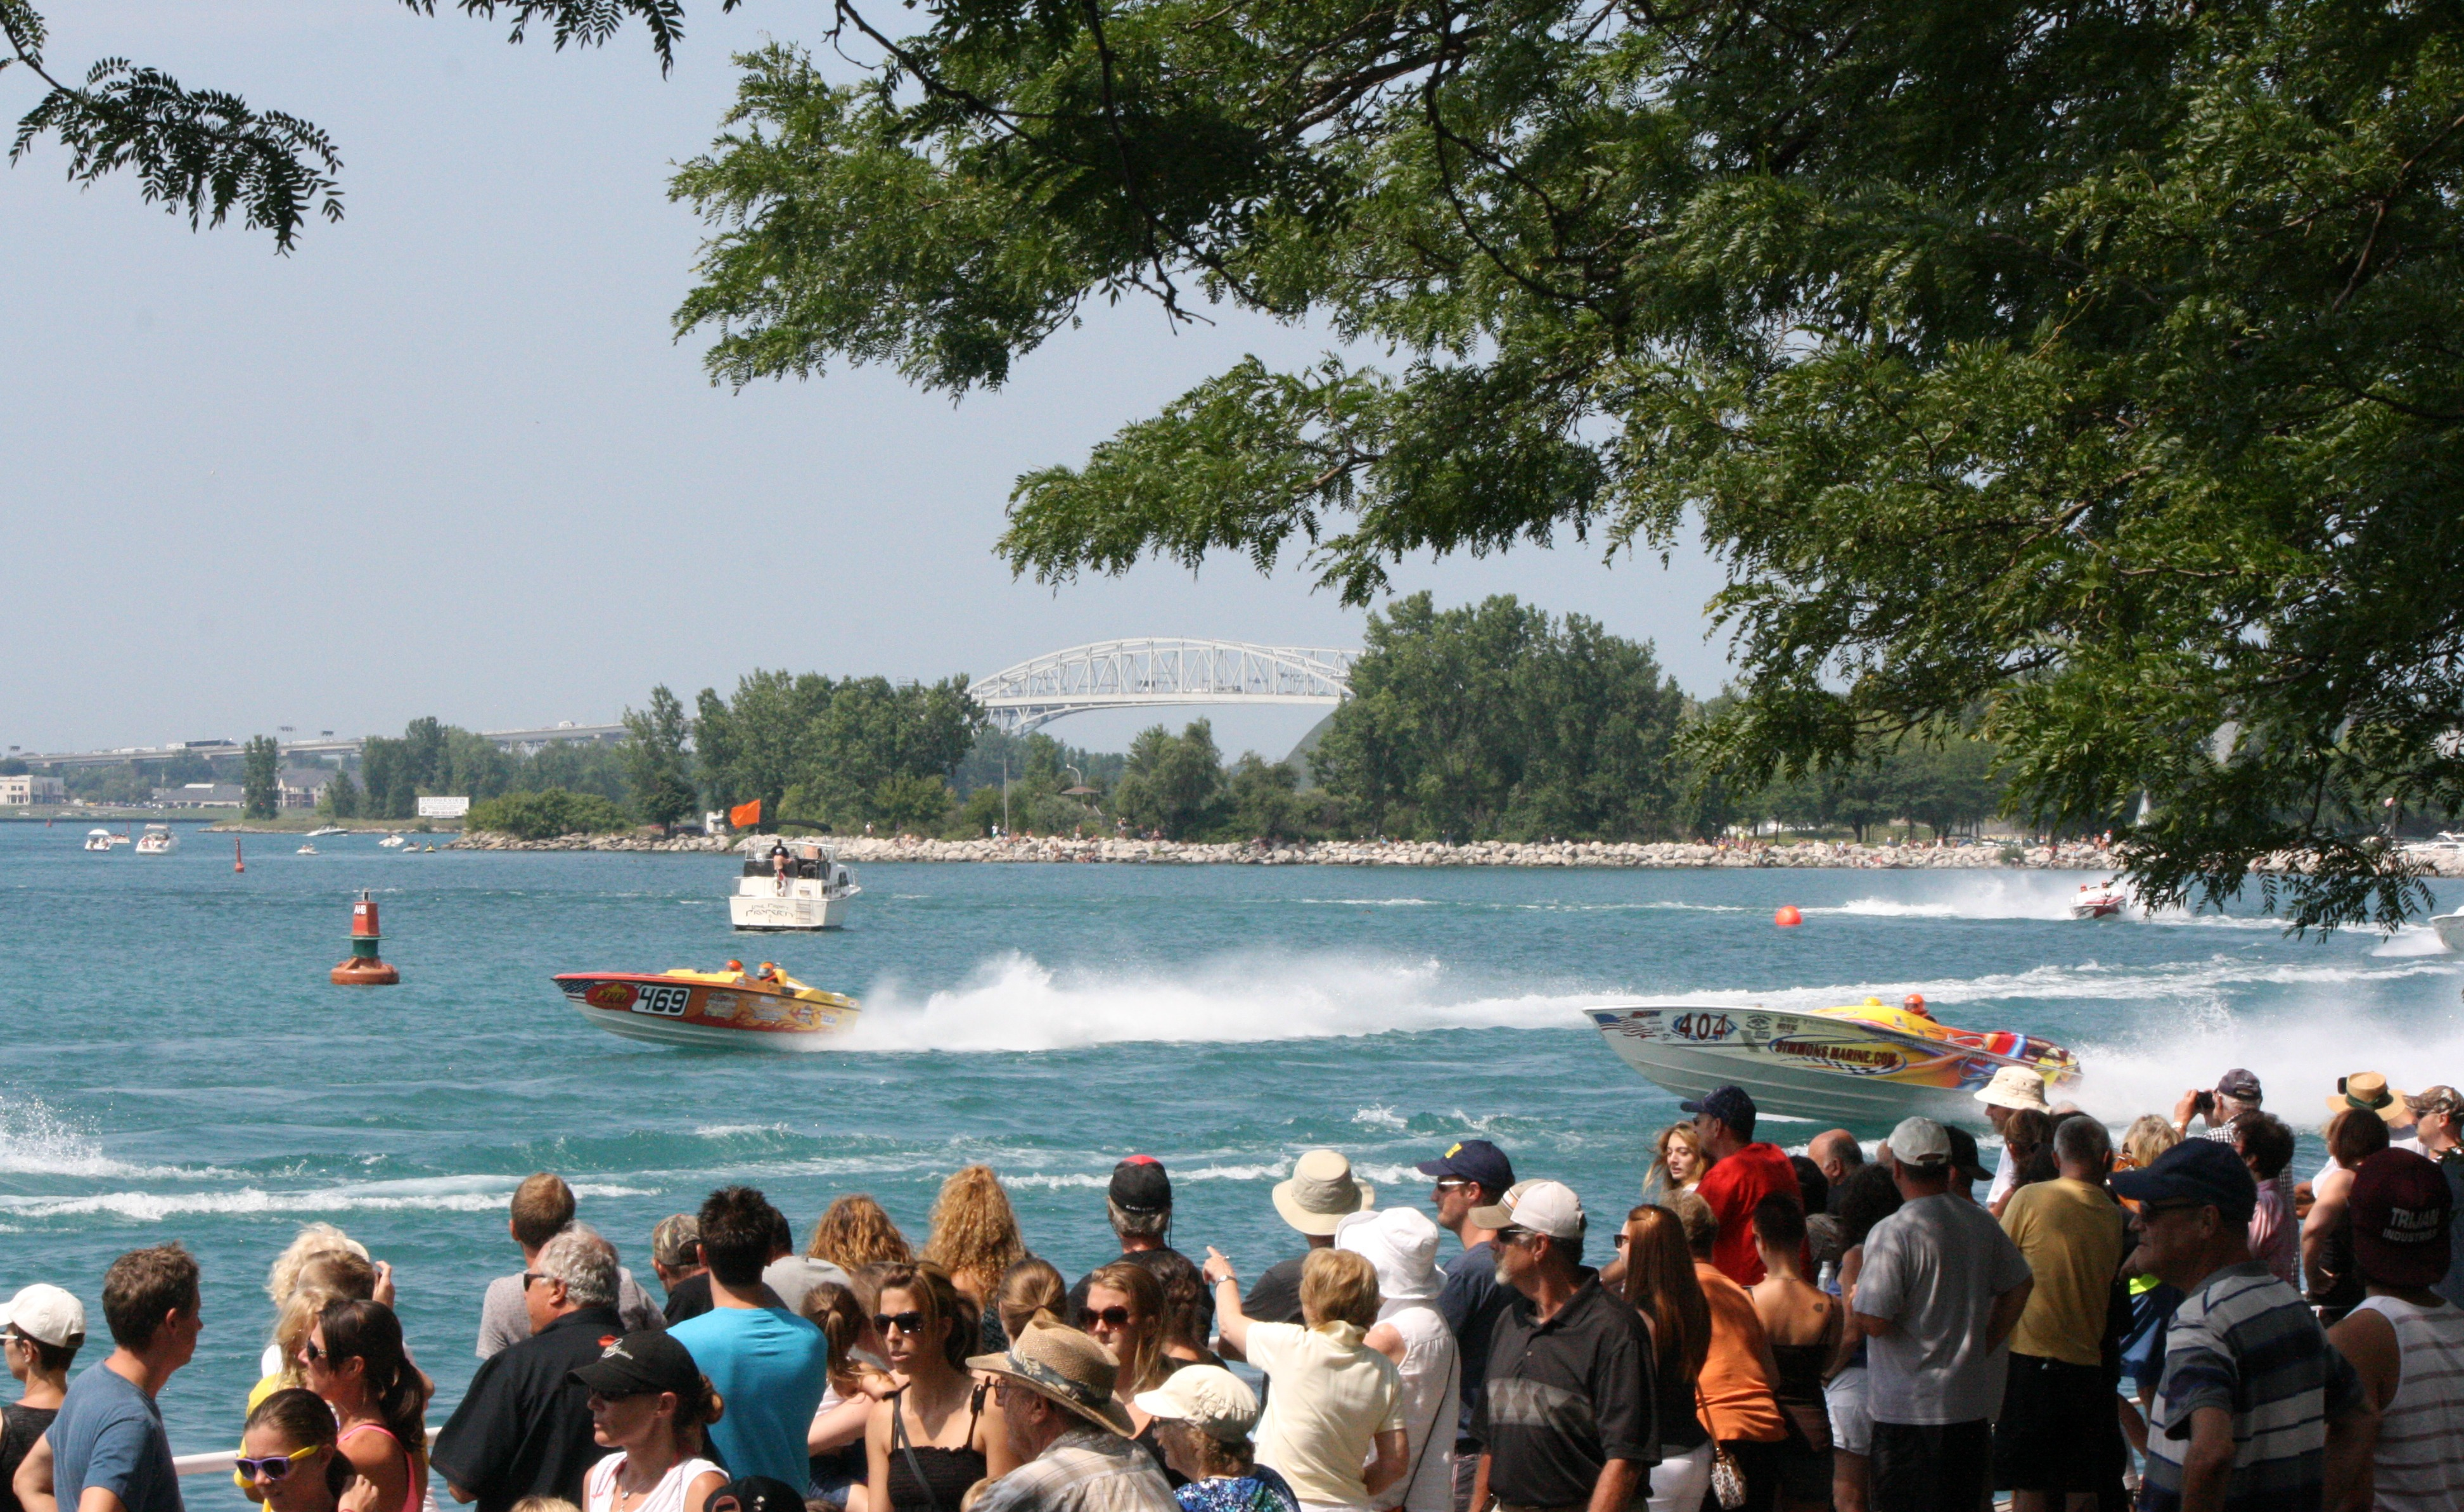 Thousands line the Sarnia waterfront Sunday August 10, 2014 for the International Powerboat Festival. (BlackburnNews.com photo by Dave Dentinger)